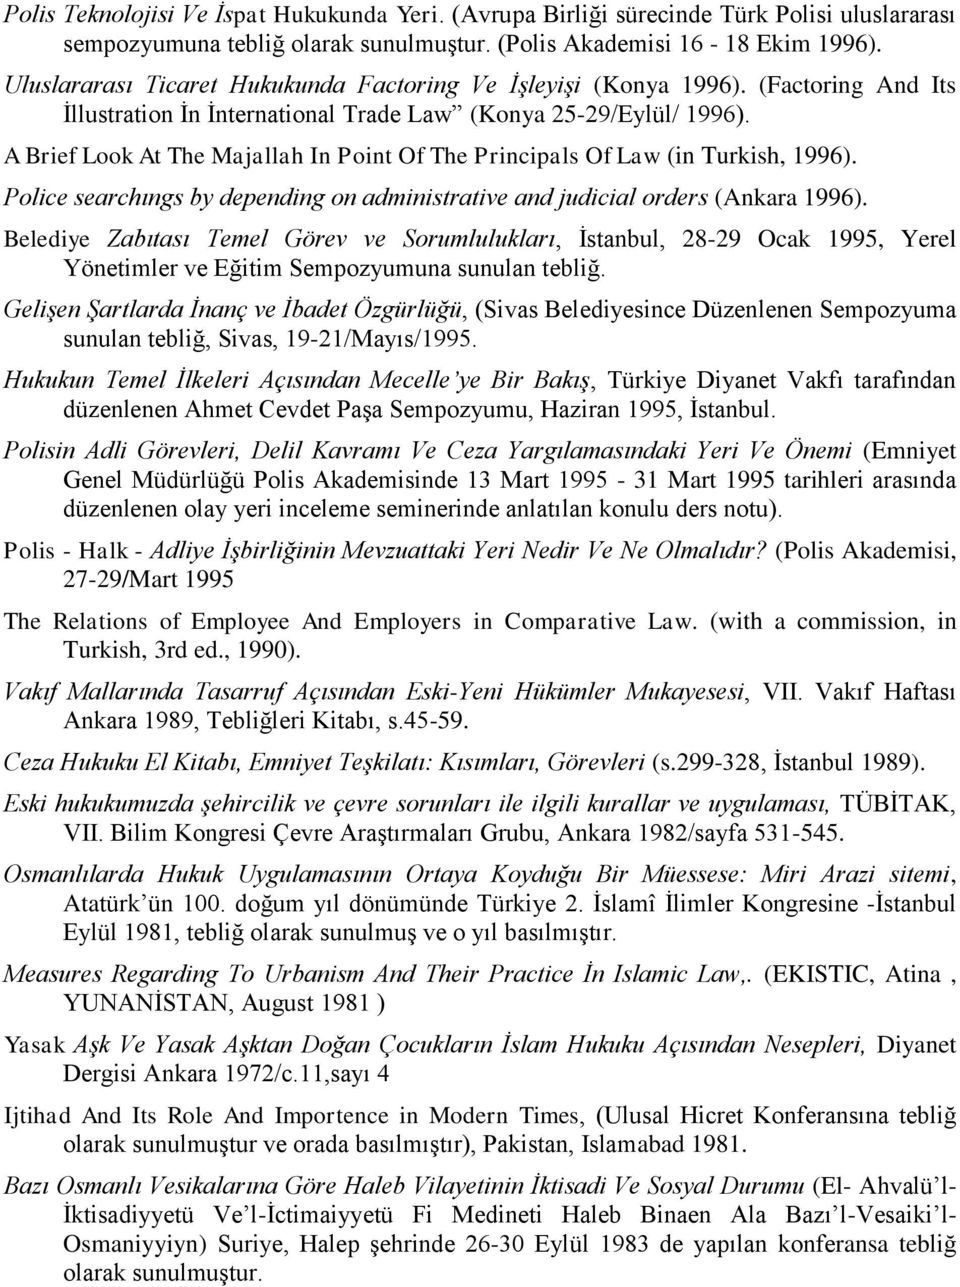 A Brief Look At The Majallah In Point Of The Principals Of Law (in Turkish, 1996). Police searchıngs by depending on administrative and judicial orders (Ankara 1996).